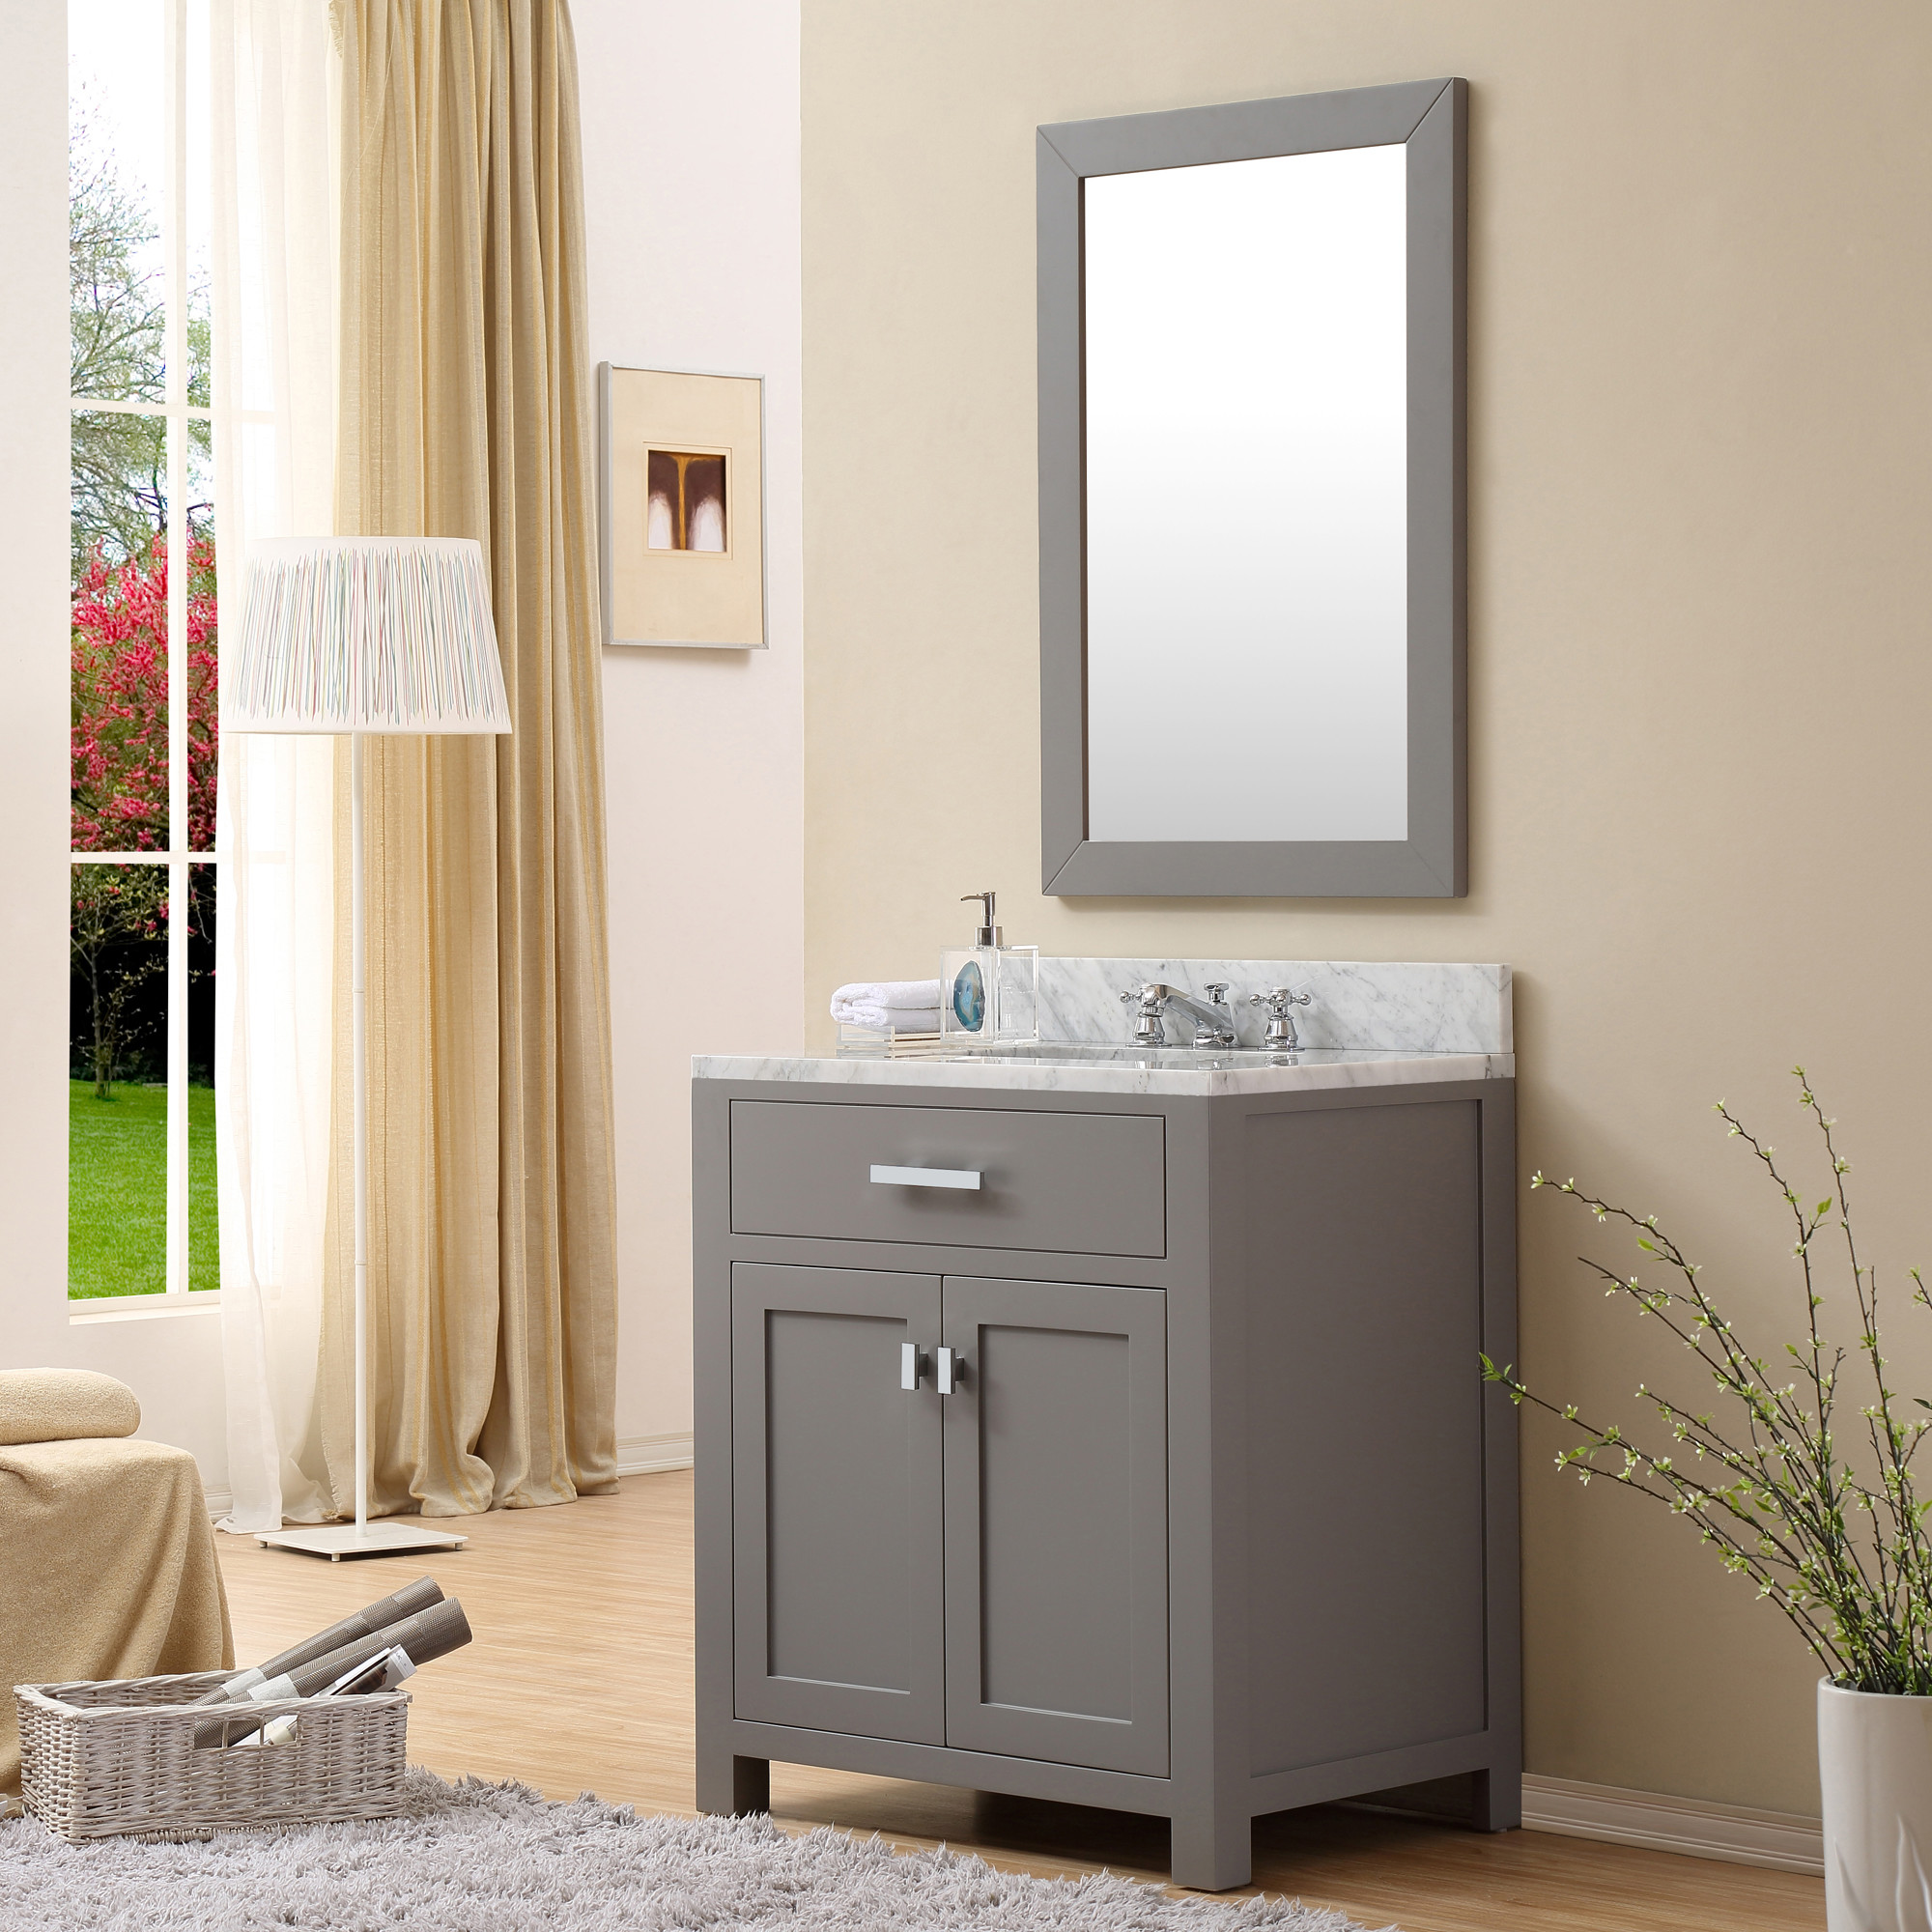 Daston 30 inch Gray Finish Single Sink Bathroom Vanity on black single sink bathroom vanity, white single sink bathroom vanity, 30 inch white bathroom vanity, small single sink bathroom vanity, large single sink bathroom vanity,